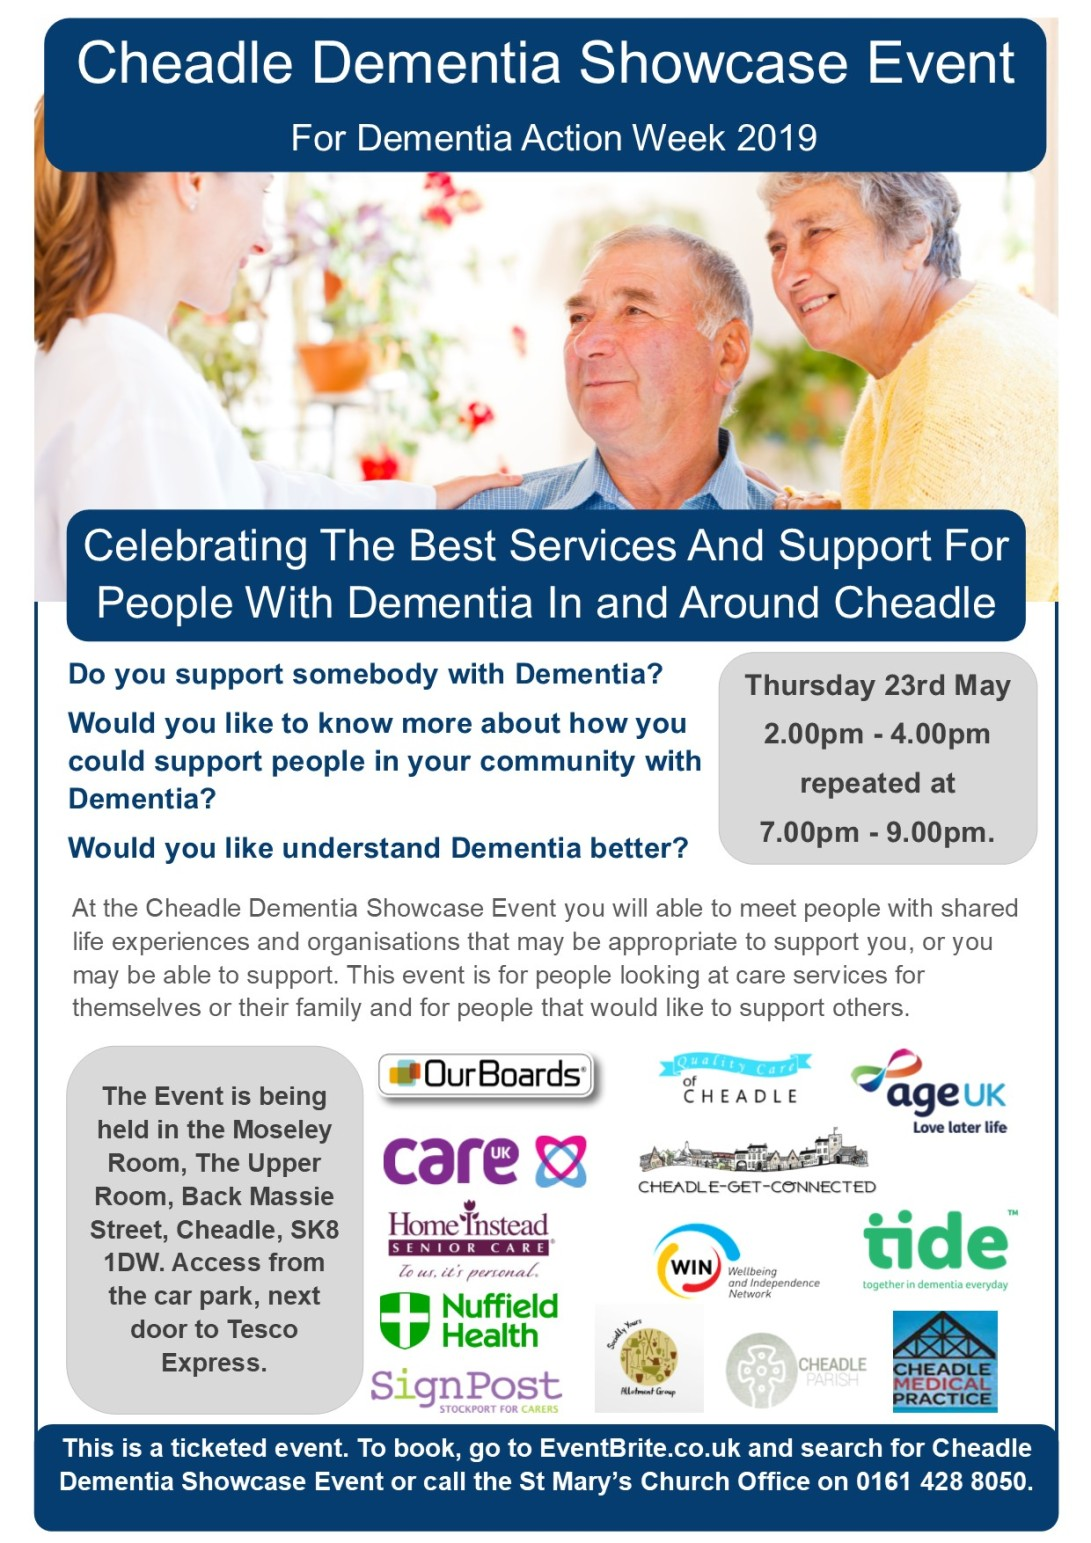 Cheadle Dementia Showcase Event 2019 Flyer